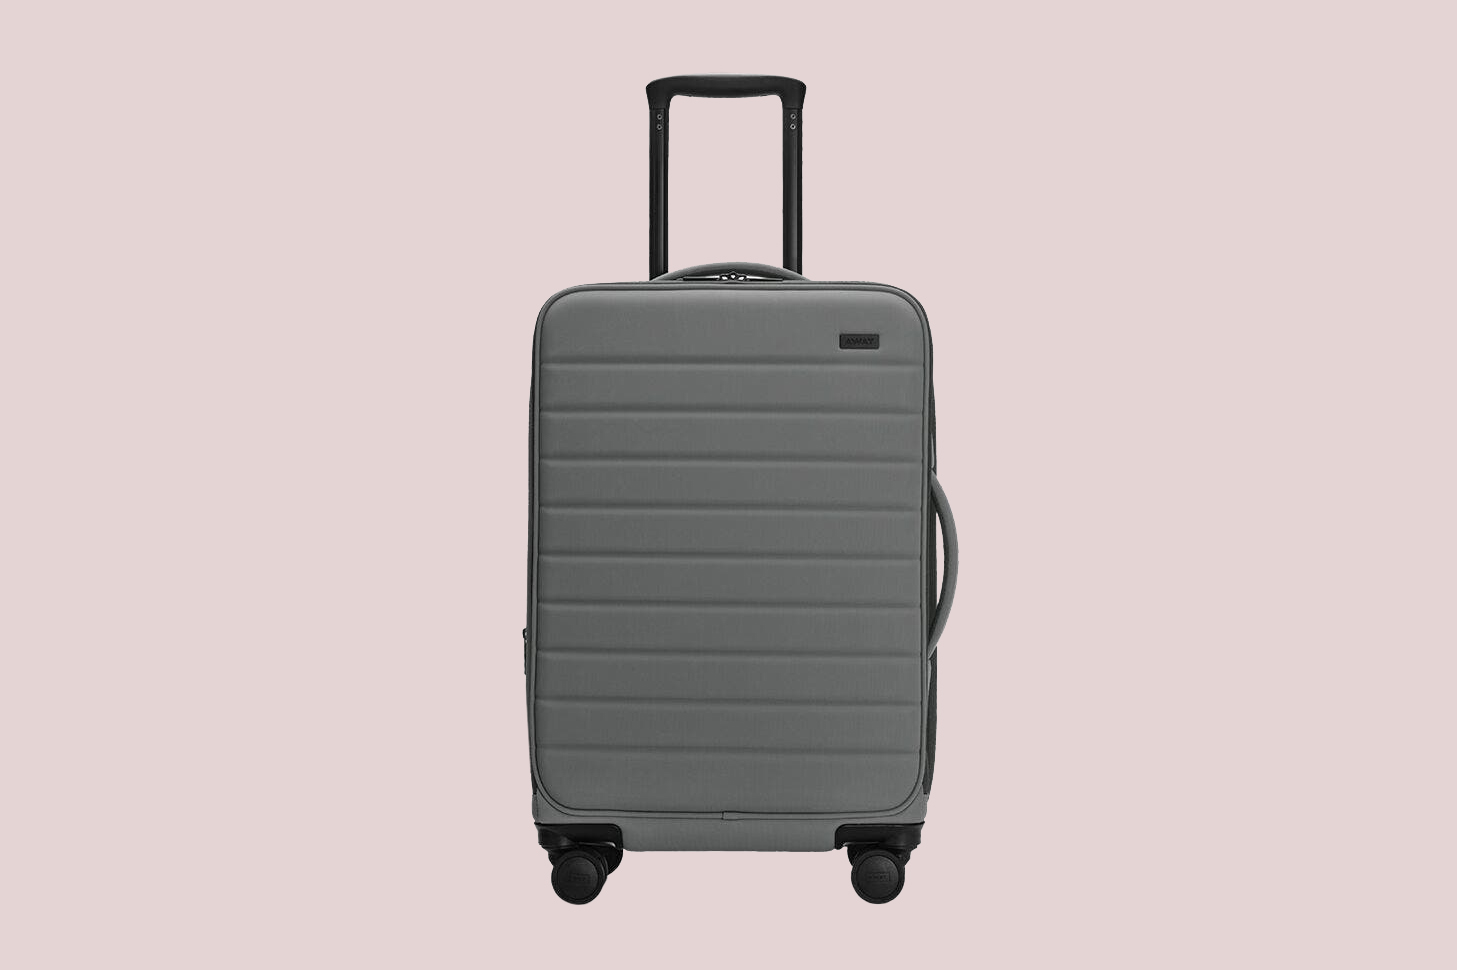 Away The Expandable Carry-On Luggage